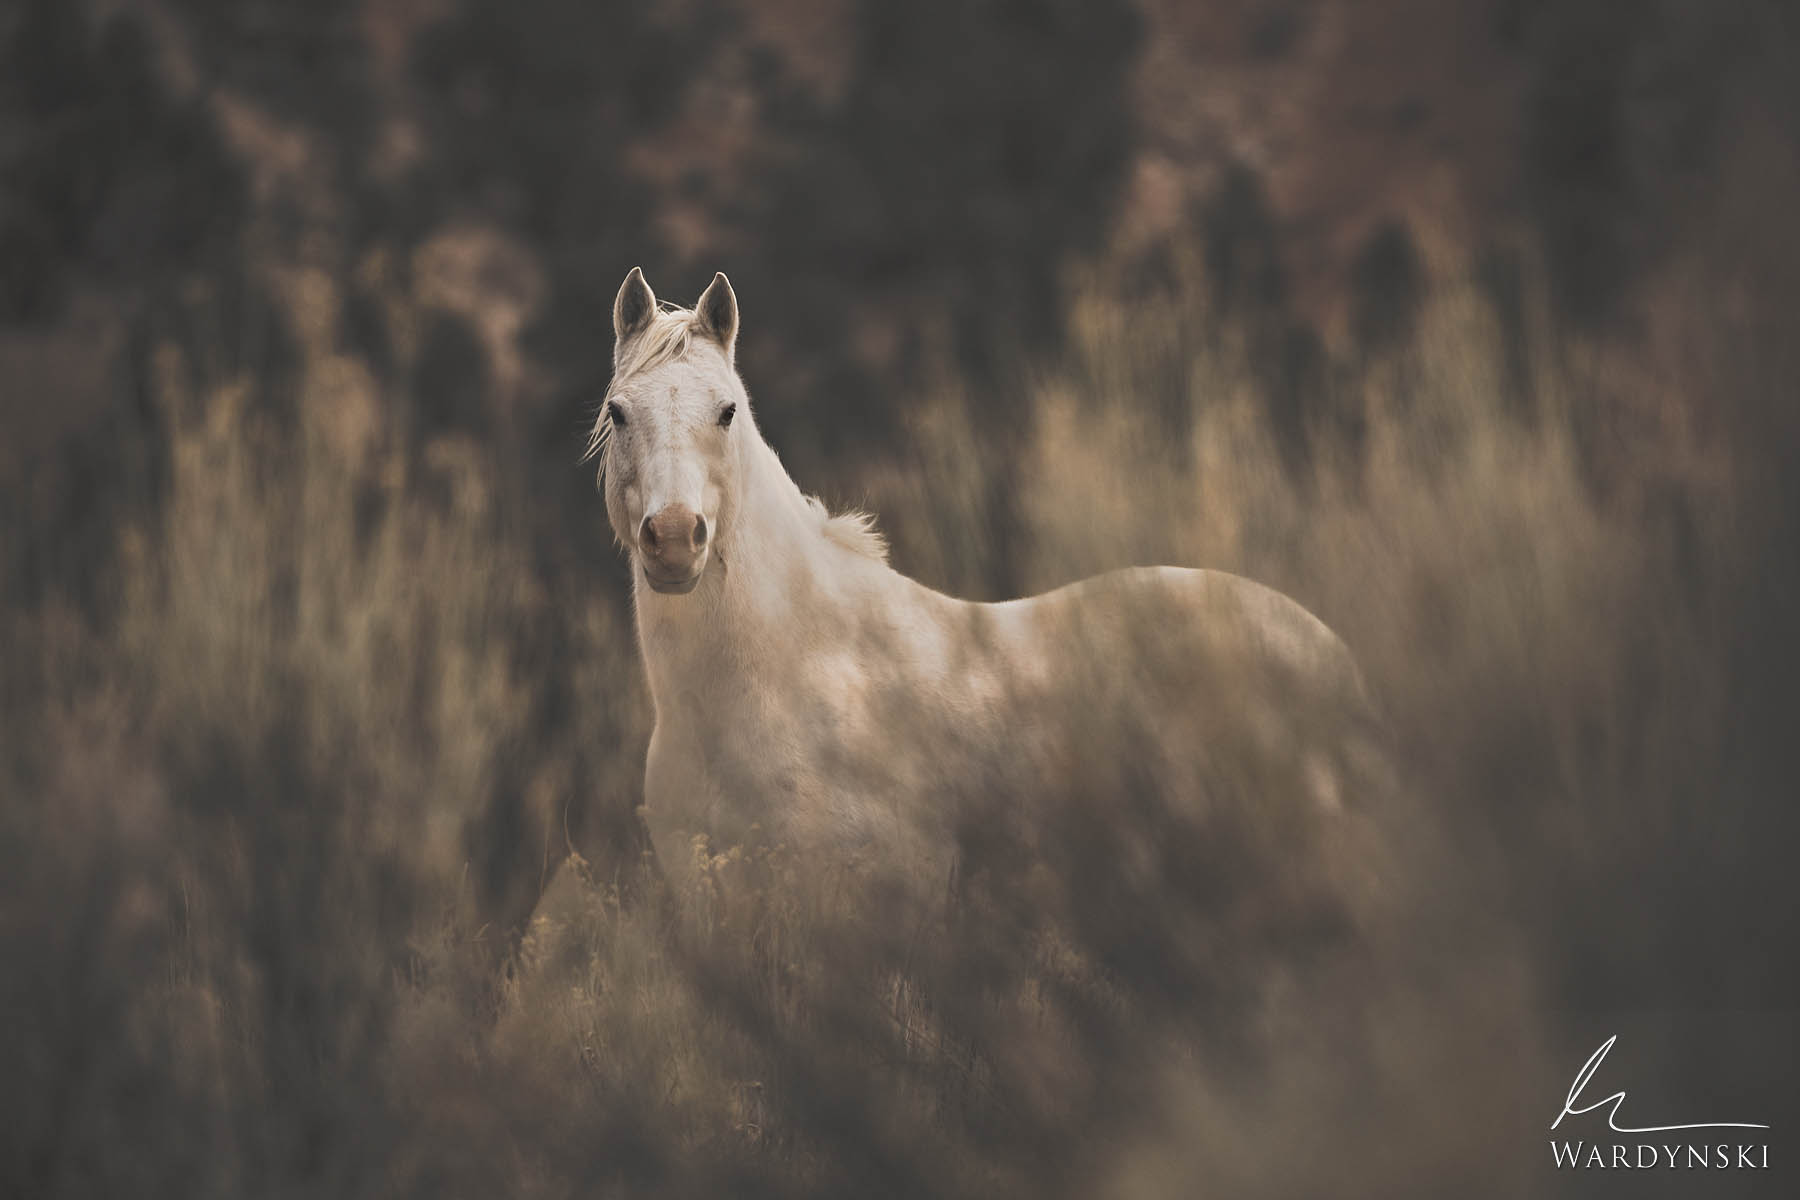 Fine Art Print | Limited Edition of 35  Seeing a wild horse in a natural environment is certainly worth taking a moment to sit...